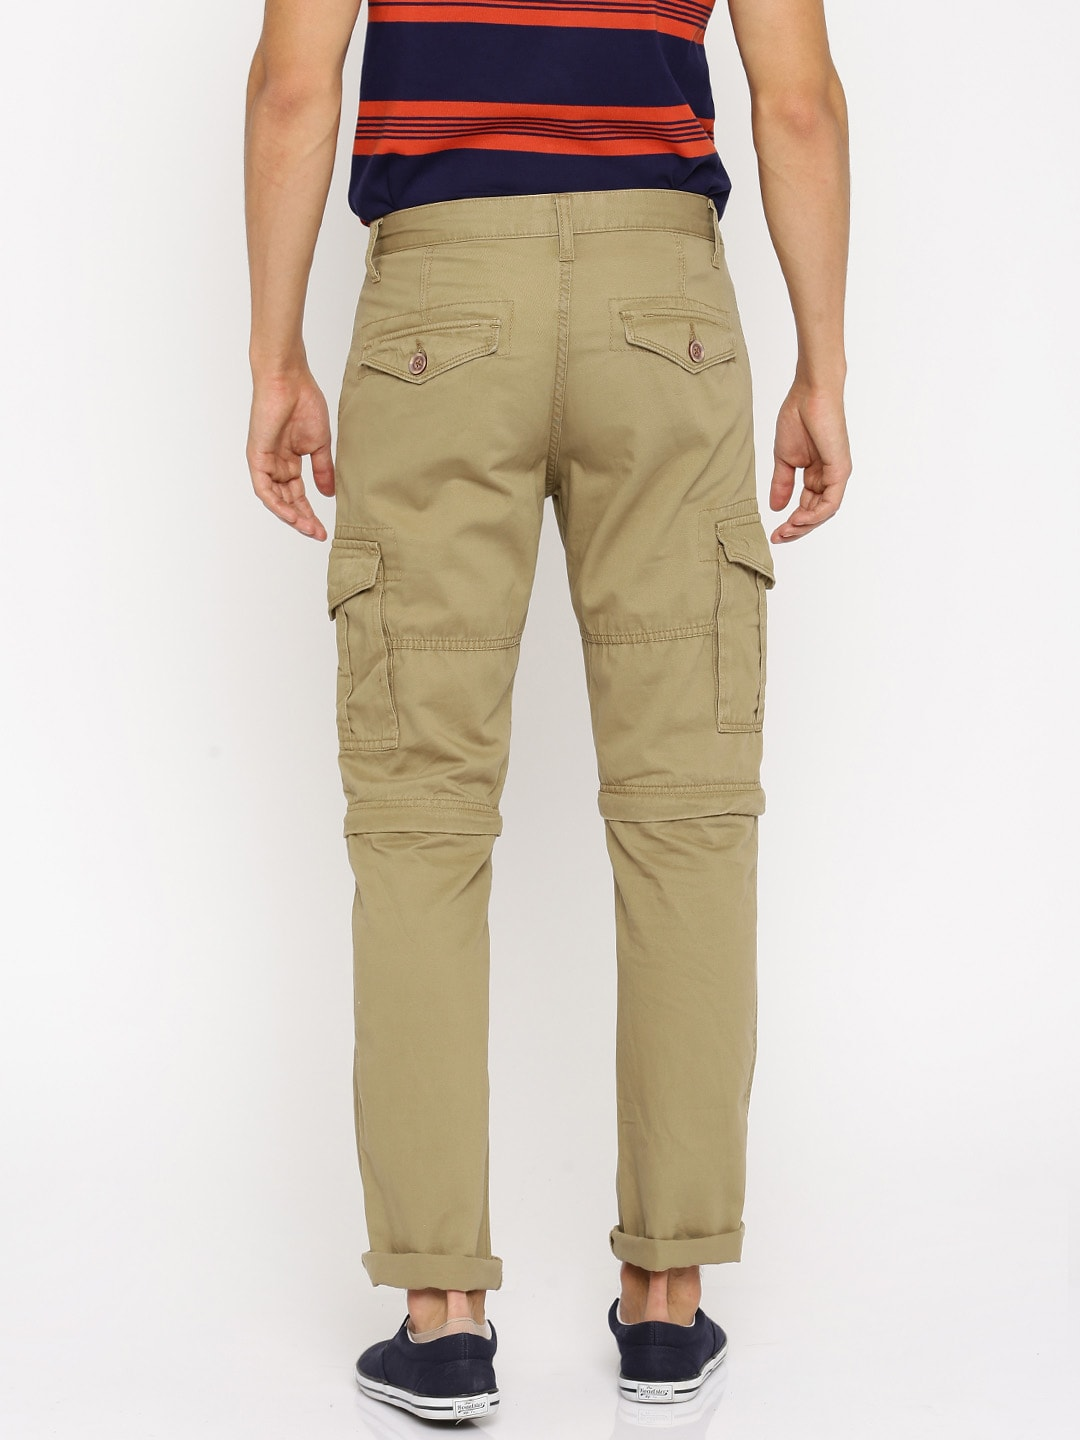 Rig O Cargo Trousers Shorts - Buy Rig O Cargo Trousers Shorts ...